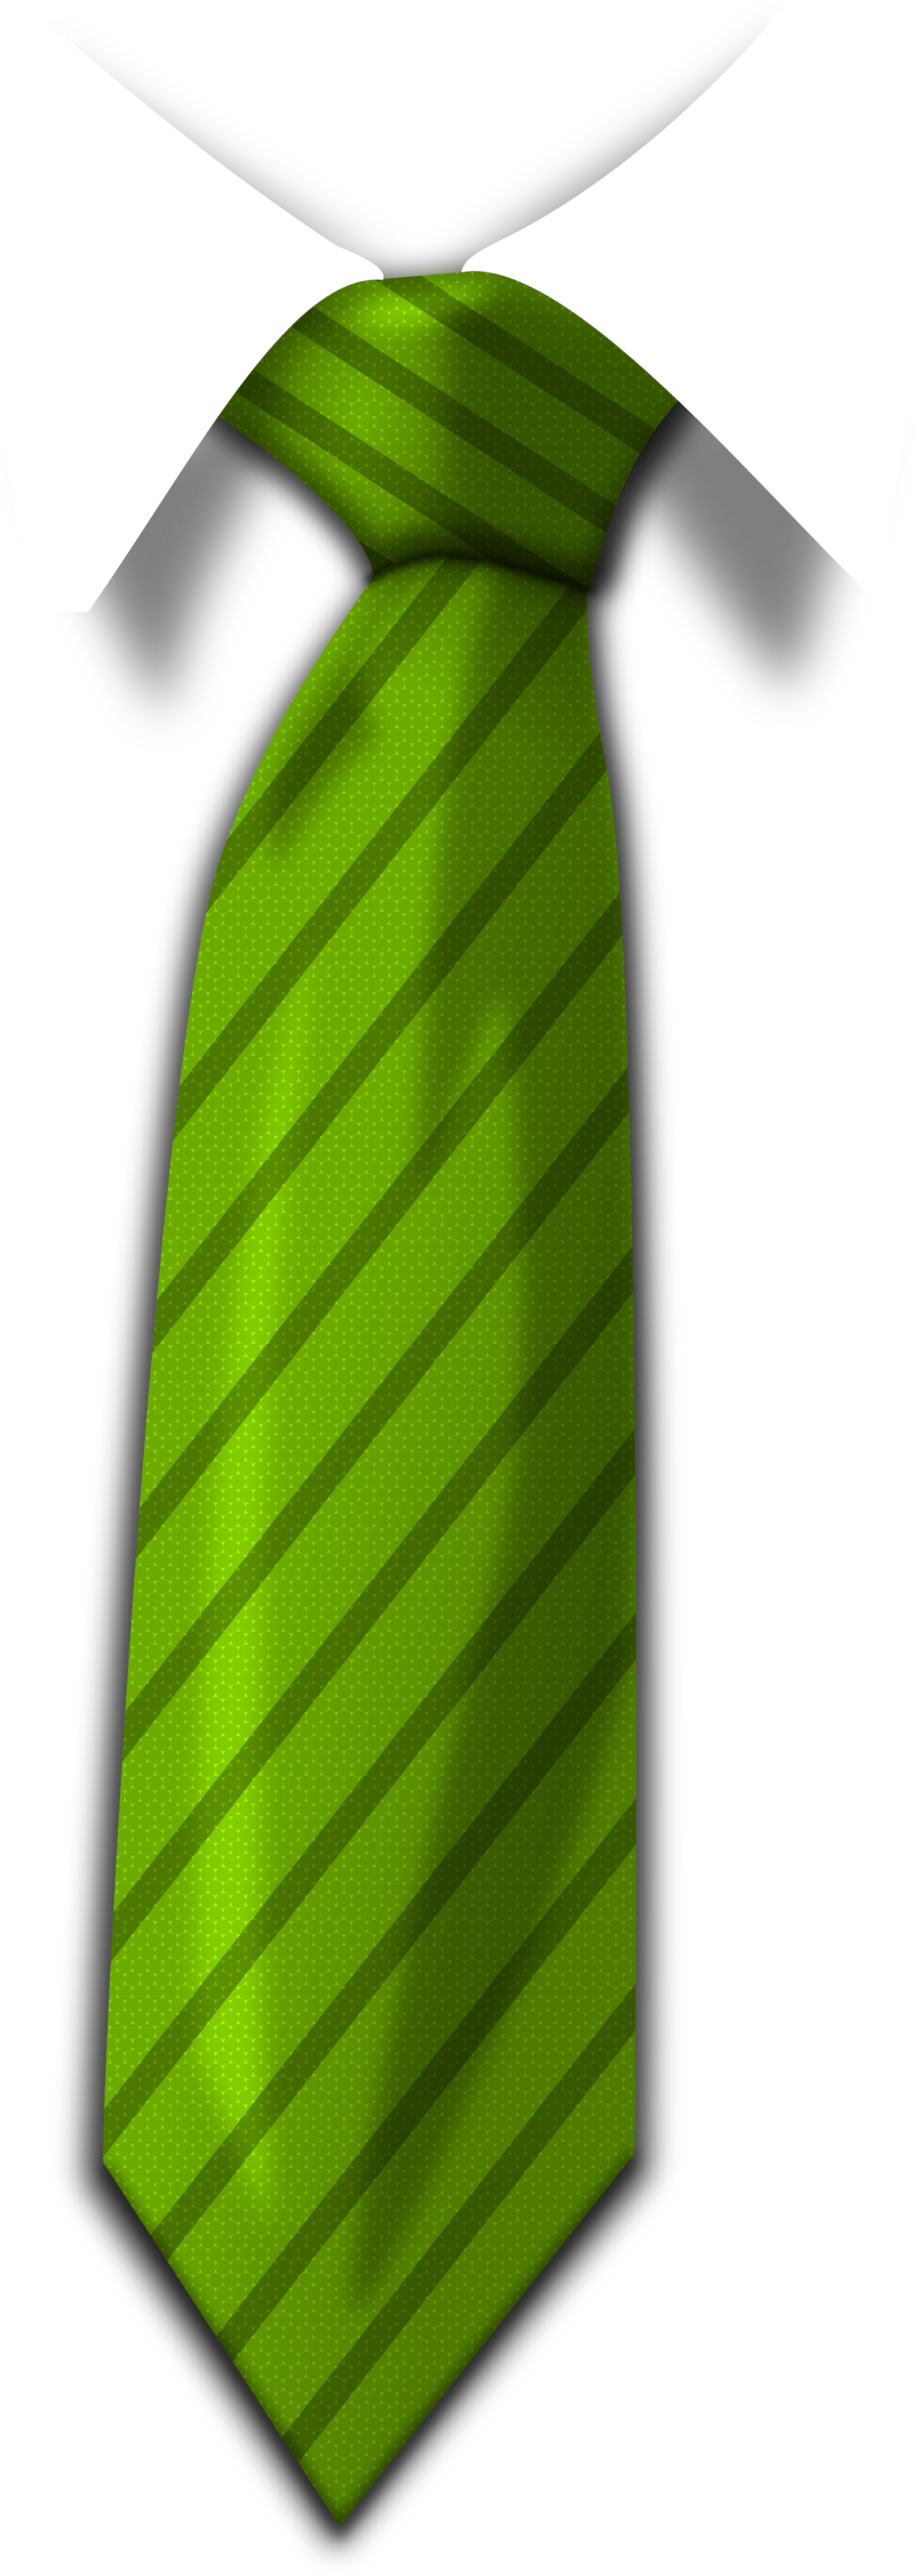 Green Tie PNG Image